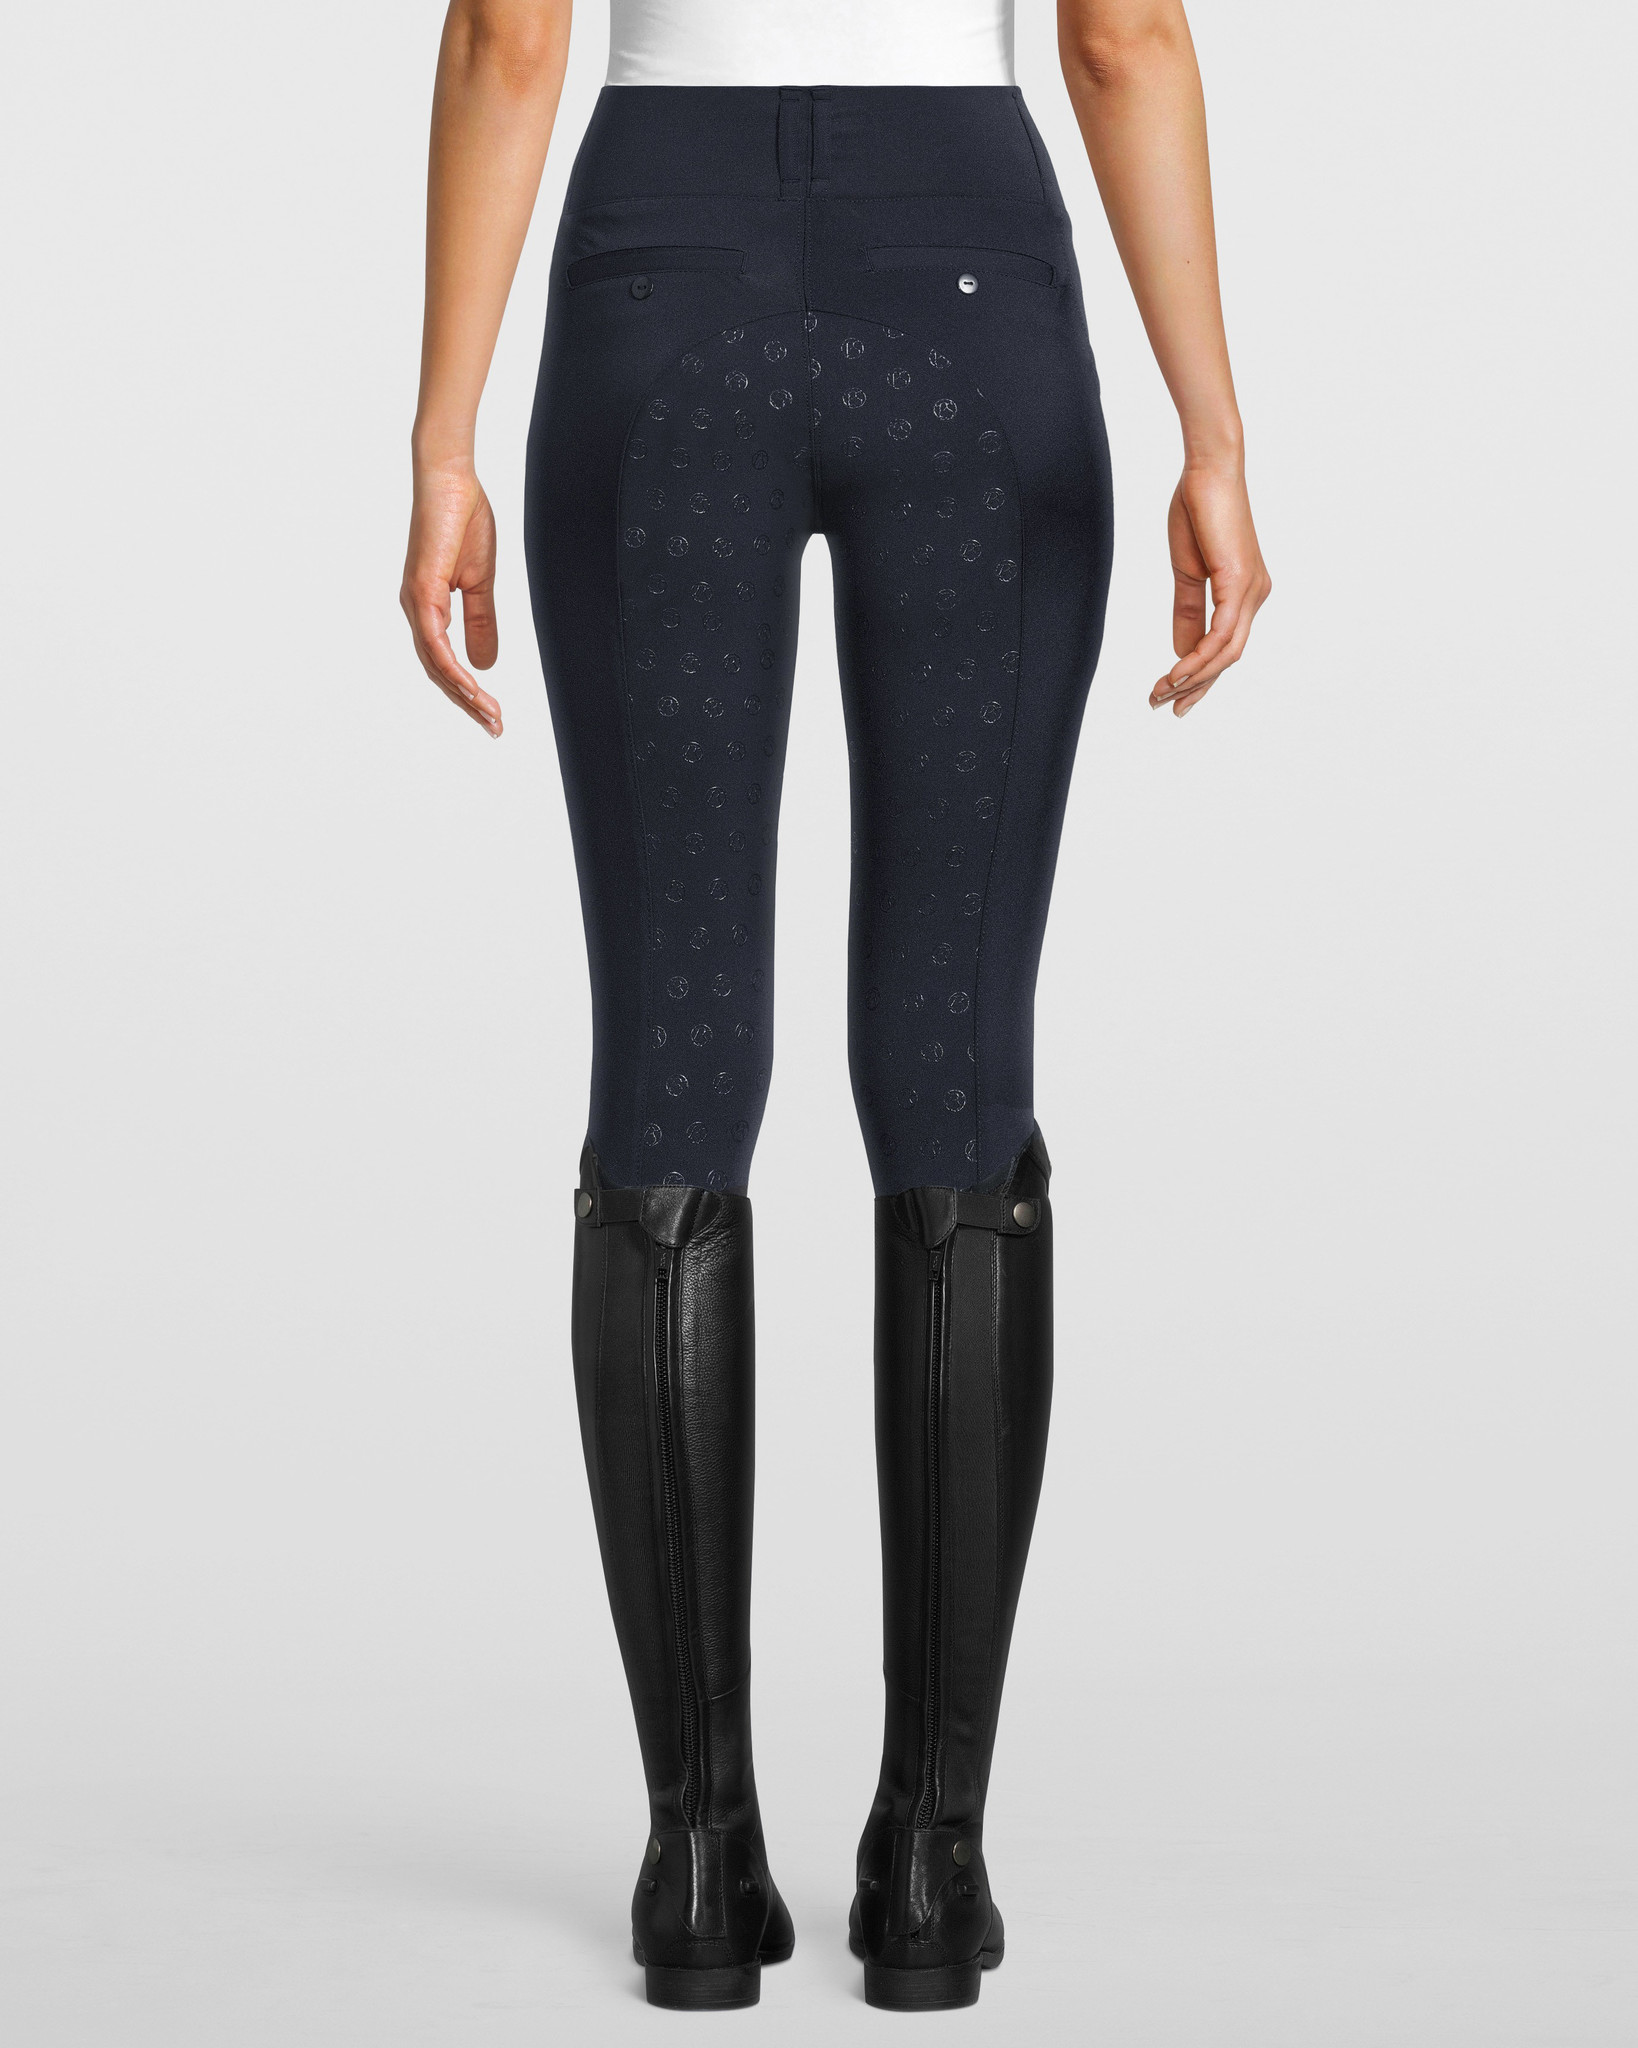 PS Of Sweden Riding Tights Mathilde